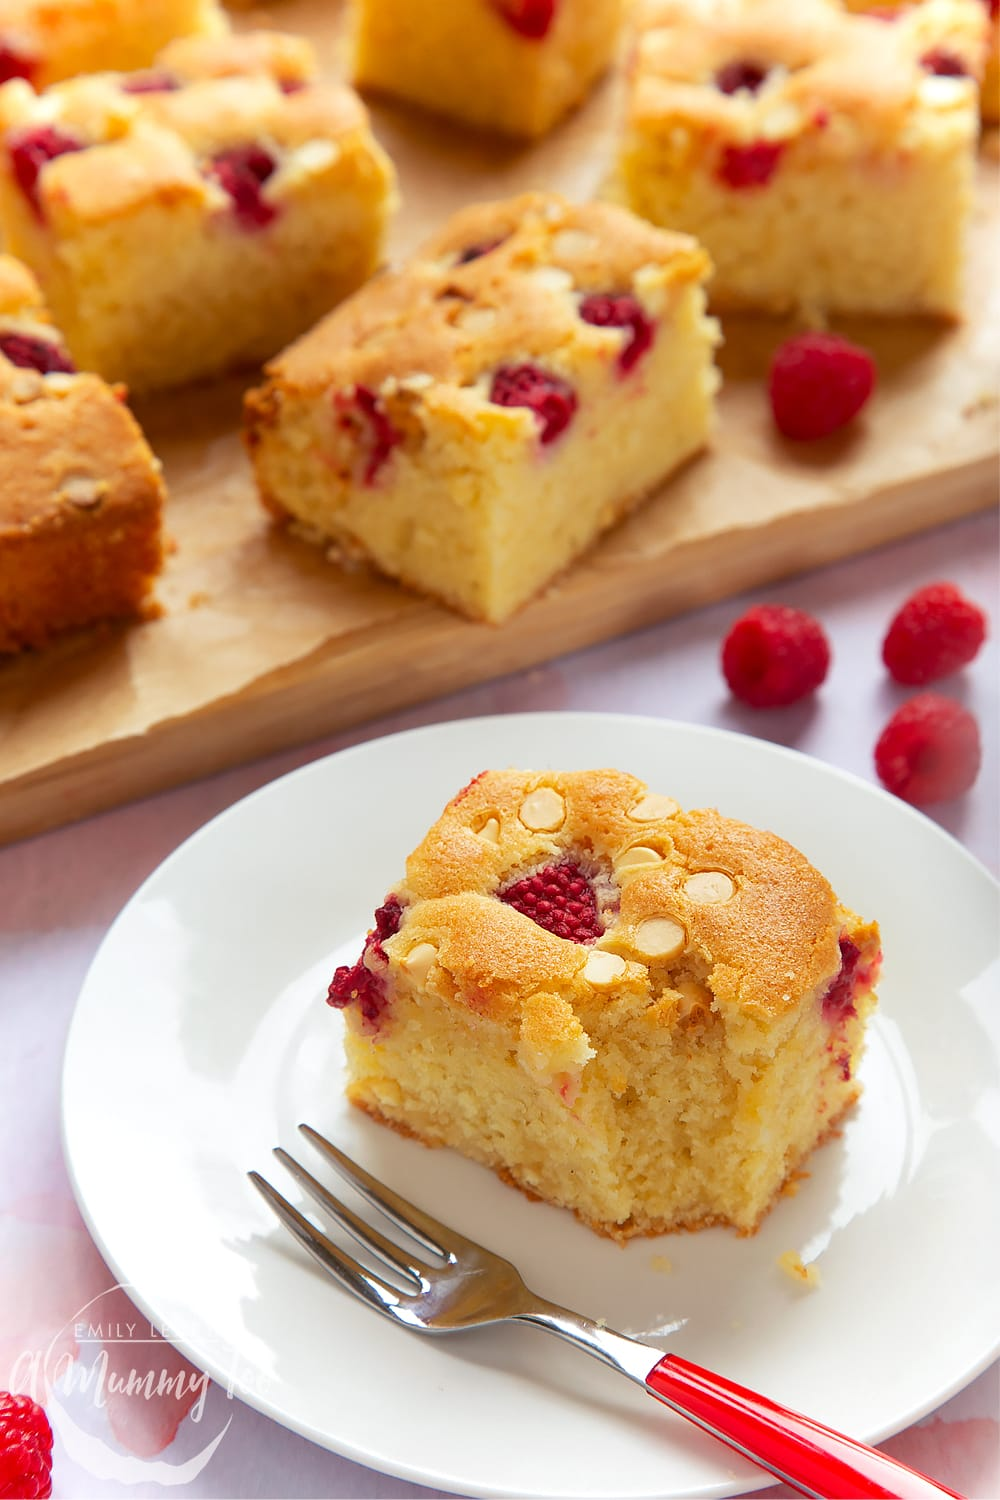 A plated serving of raspberry and white chocolate traybake